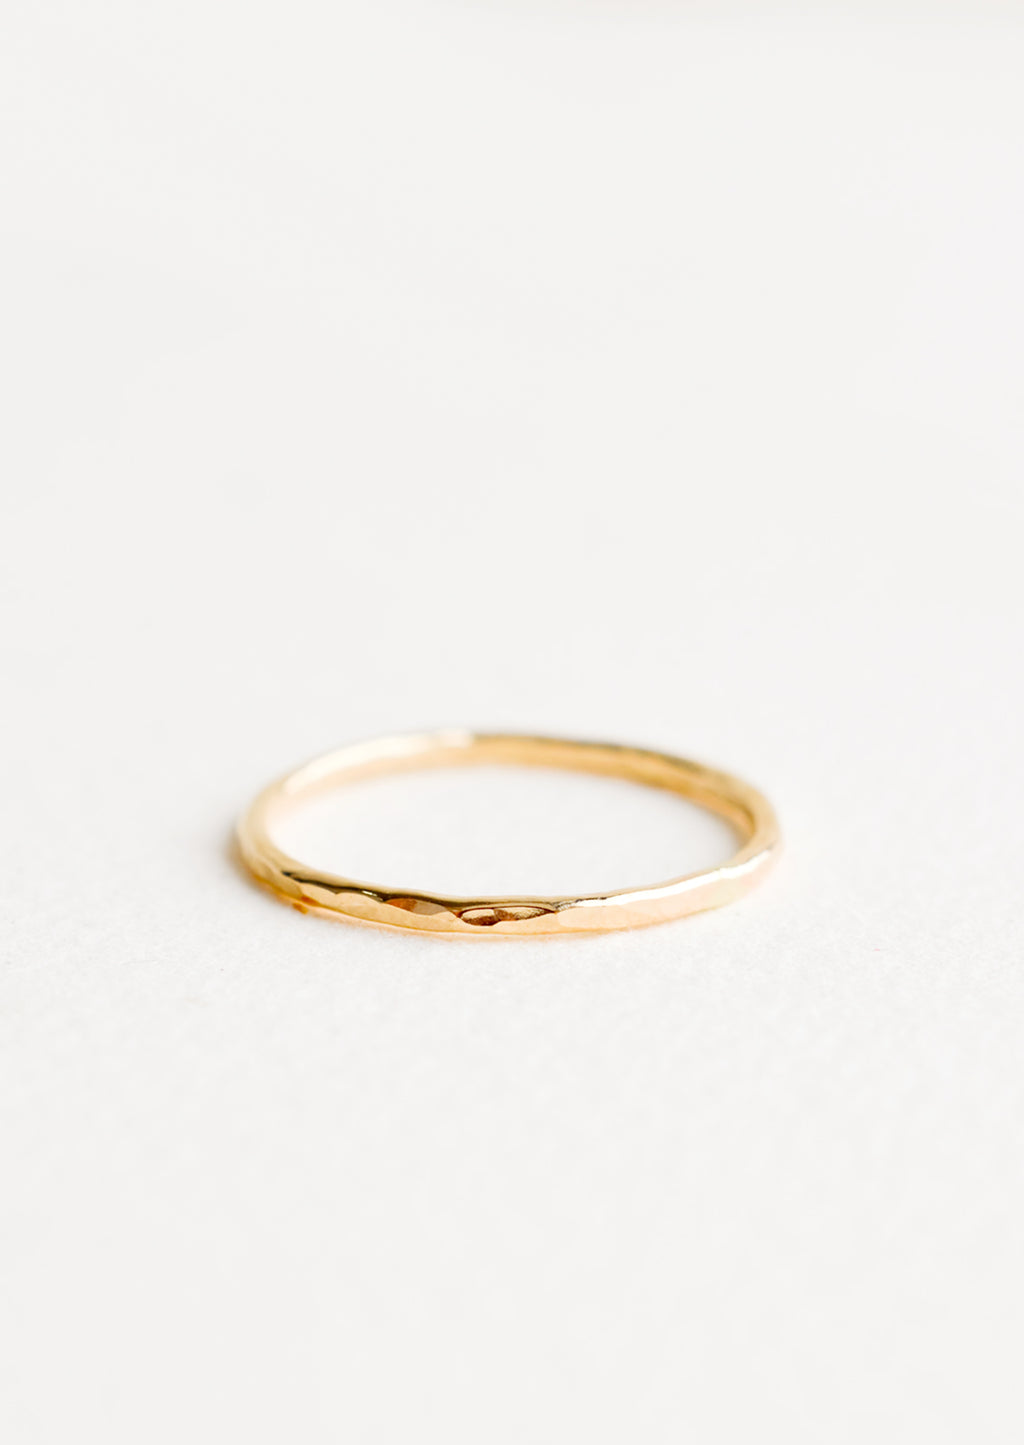 1: Thin hammered gold ring.